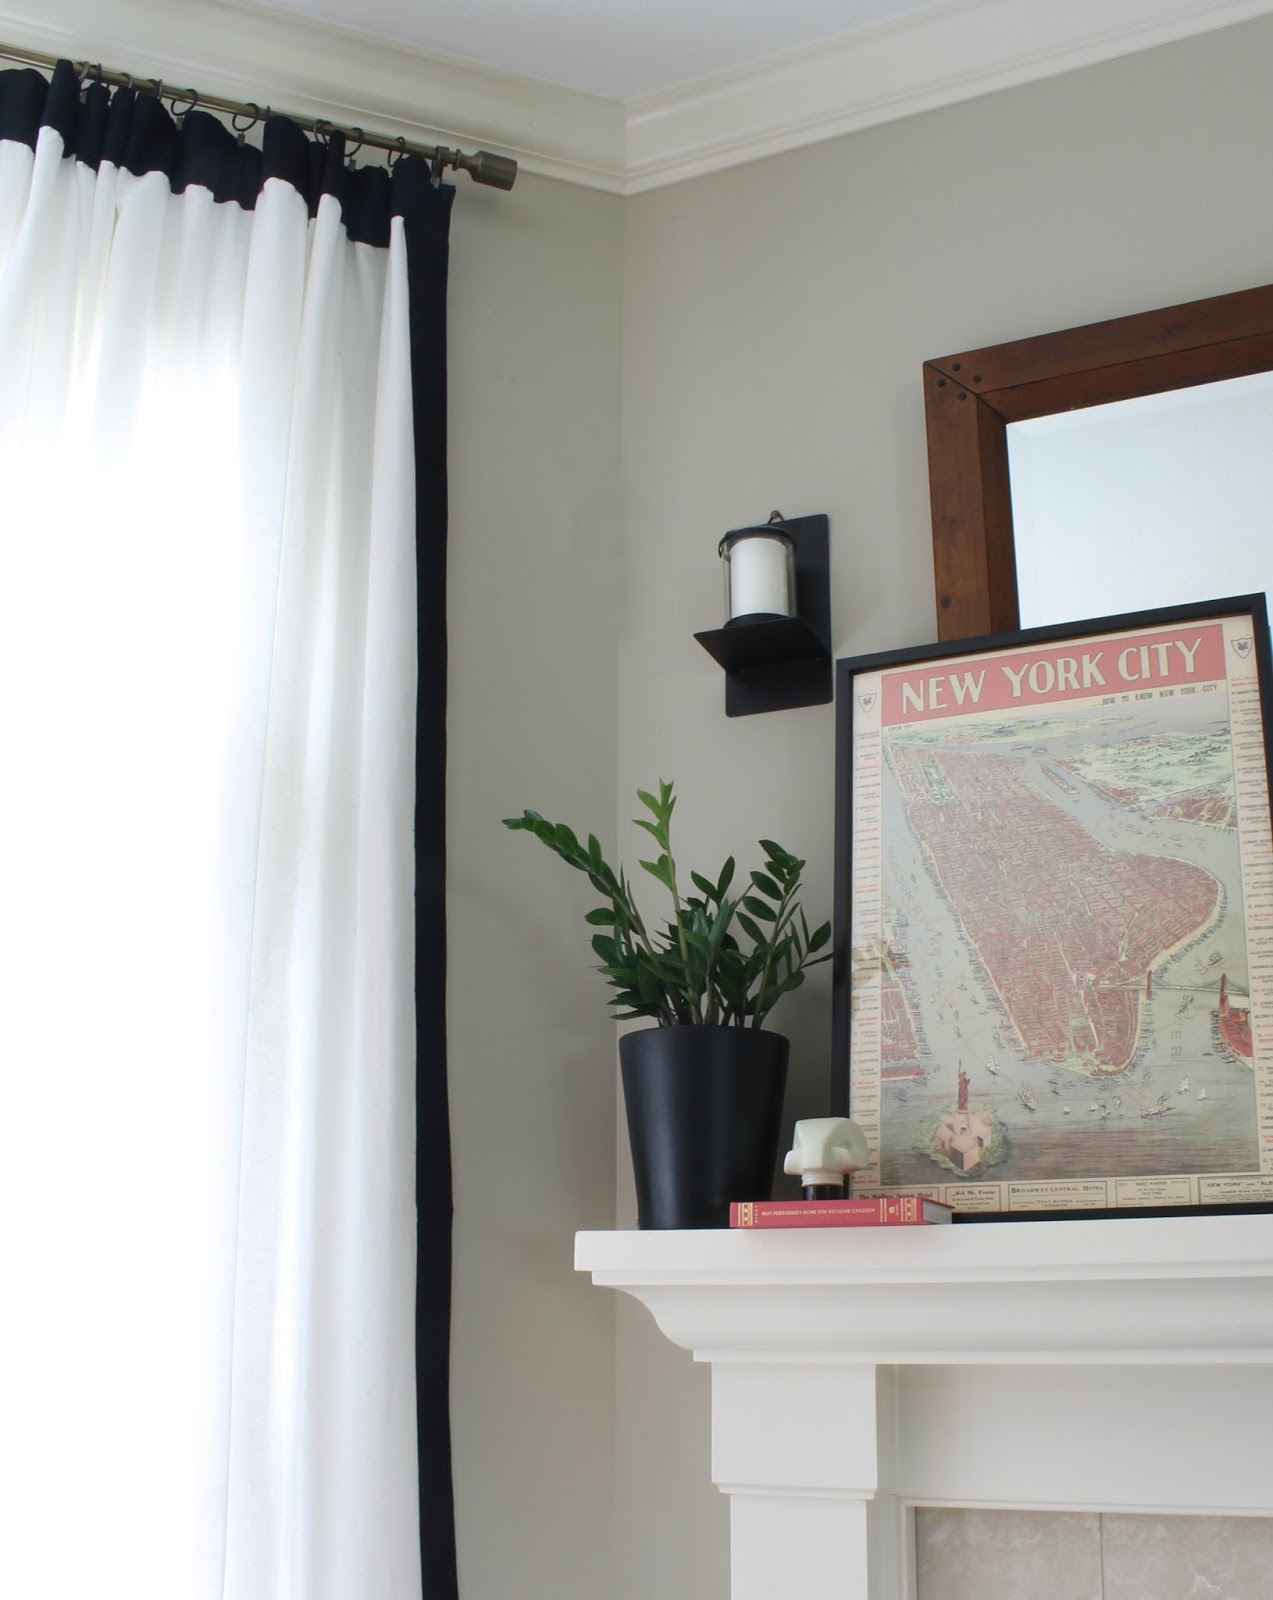 White Curtains With Black Trim DIY NYC Poster